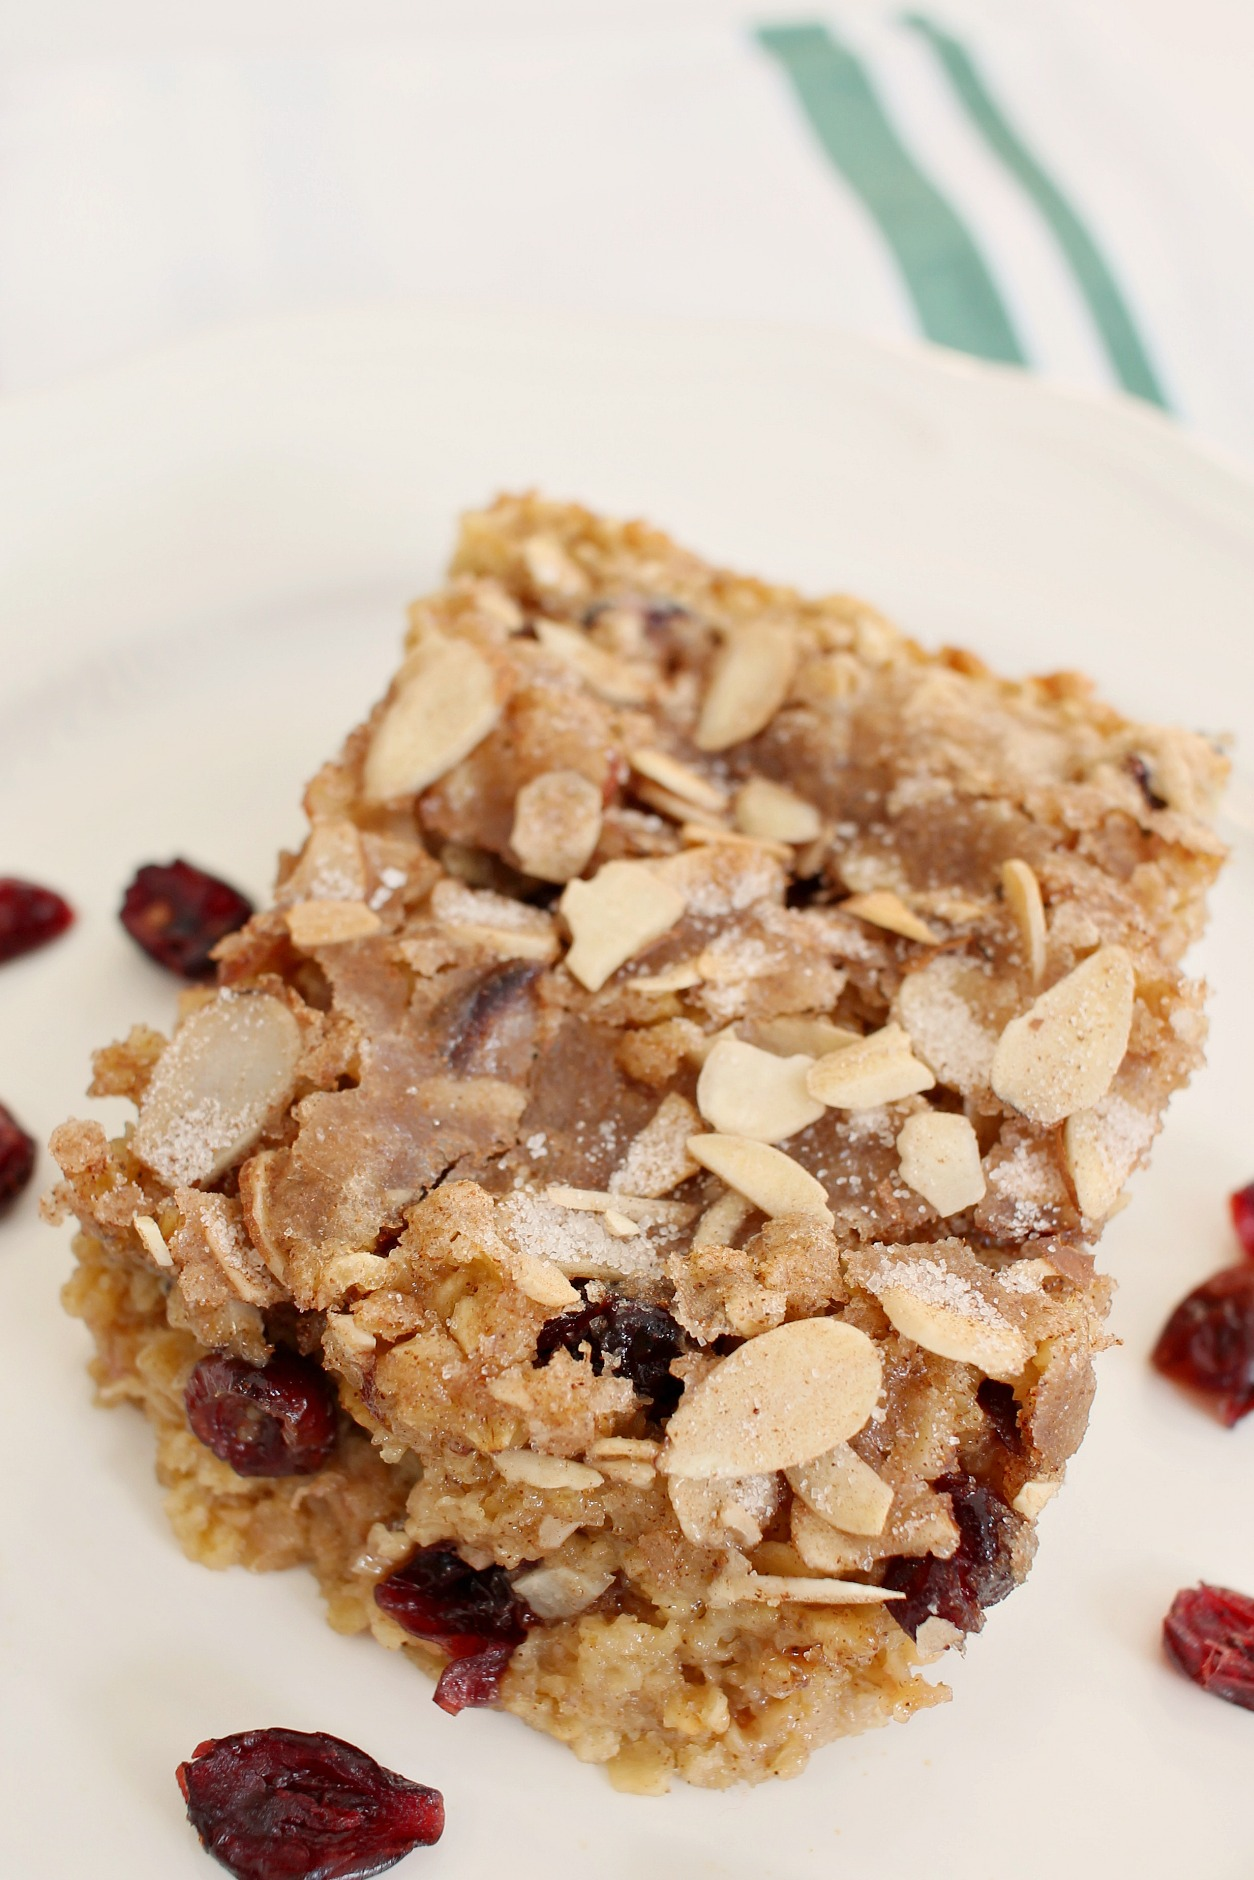 a slice of cranberry almond baked oatmeal on a white plate